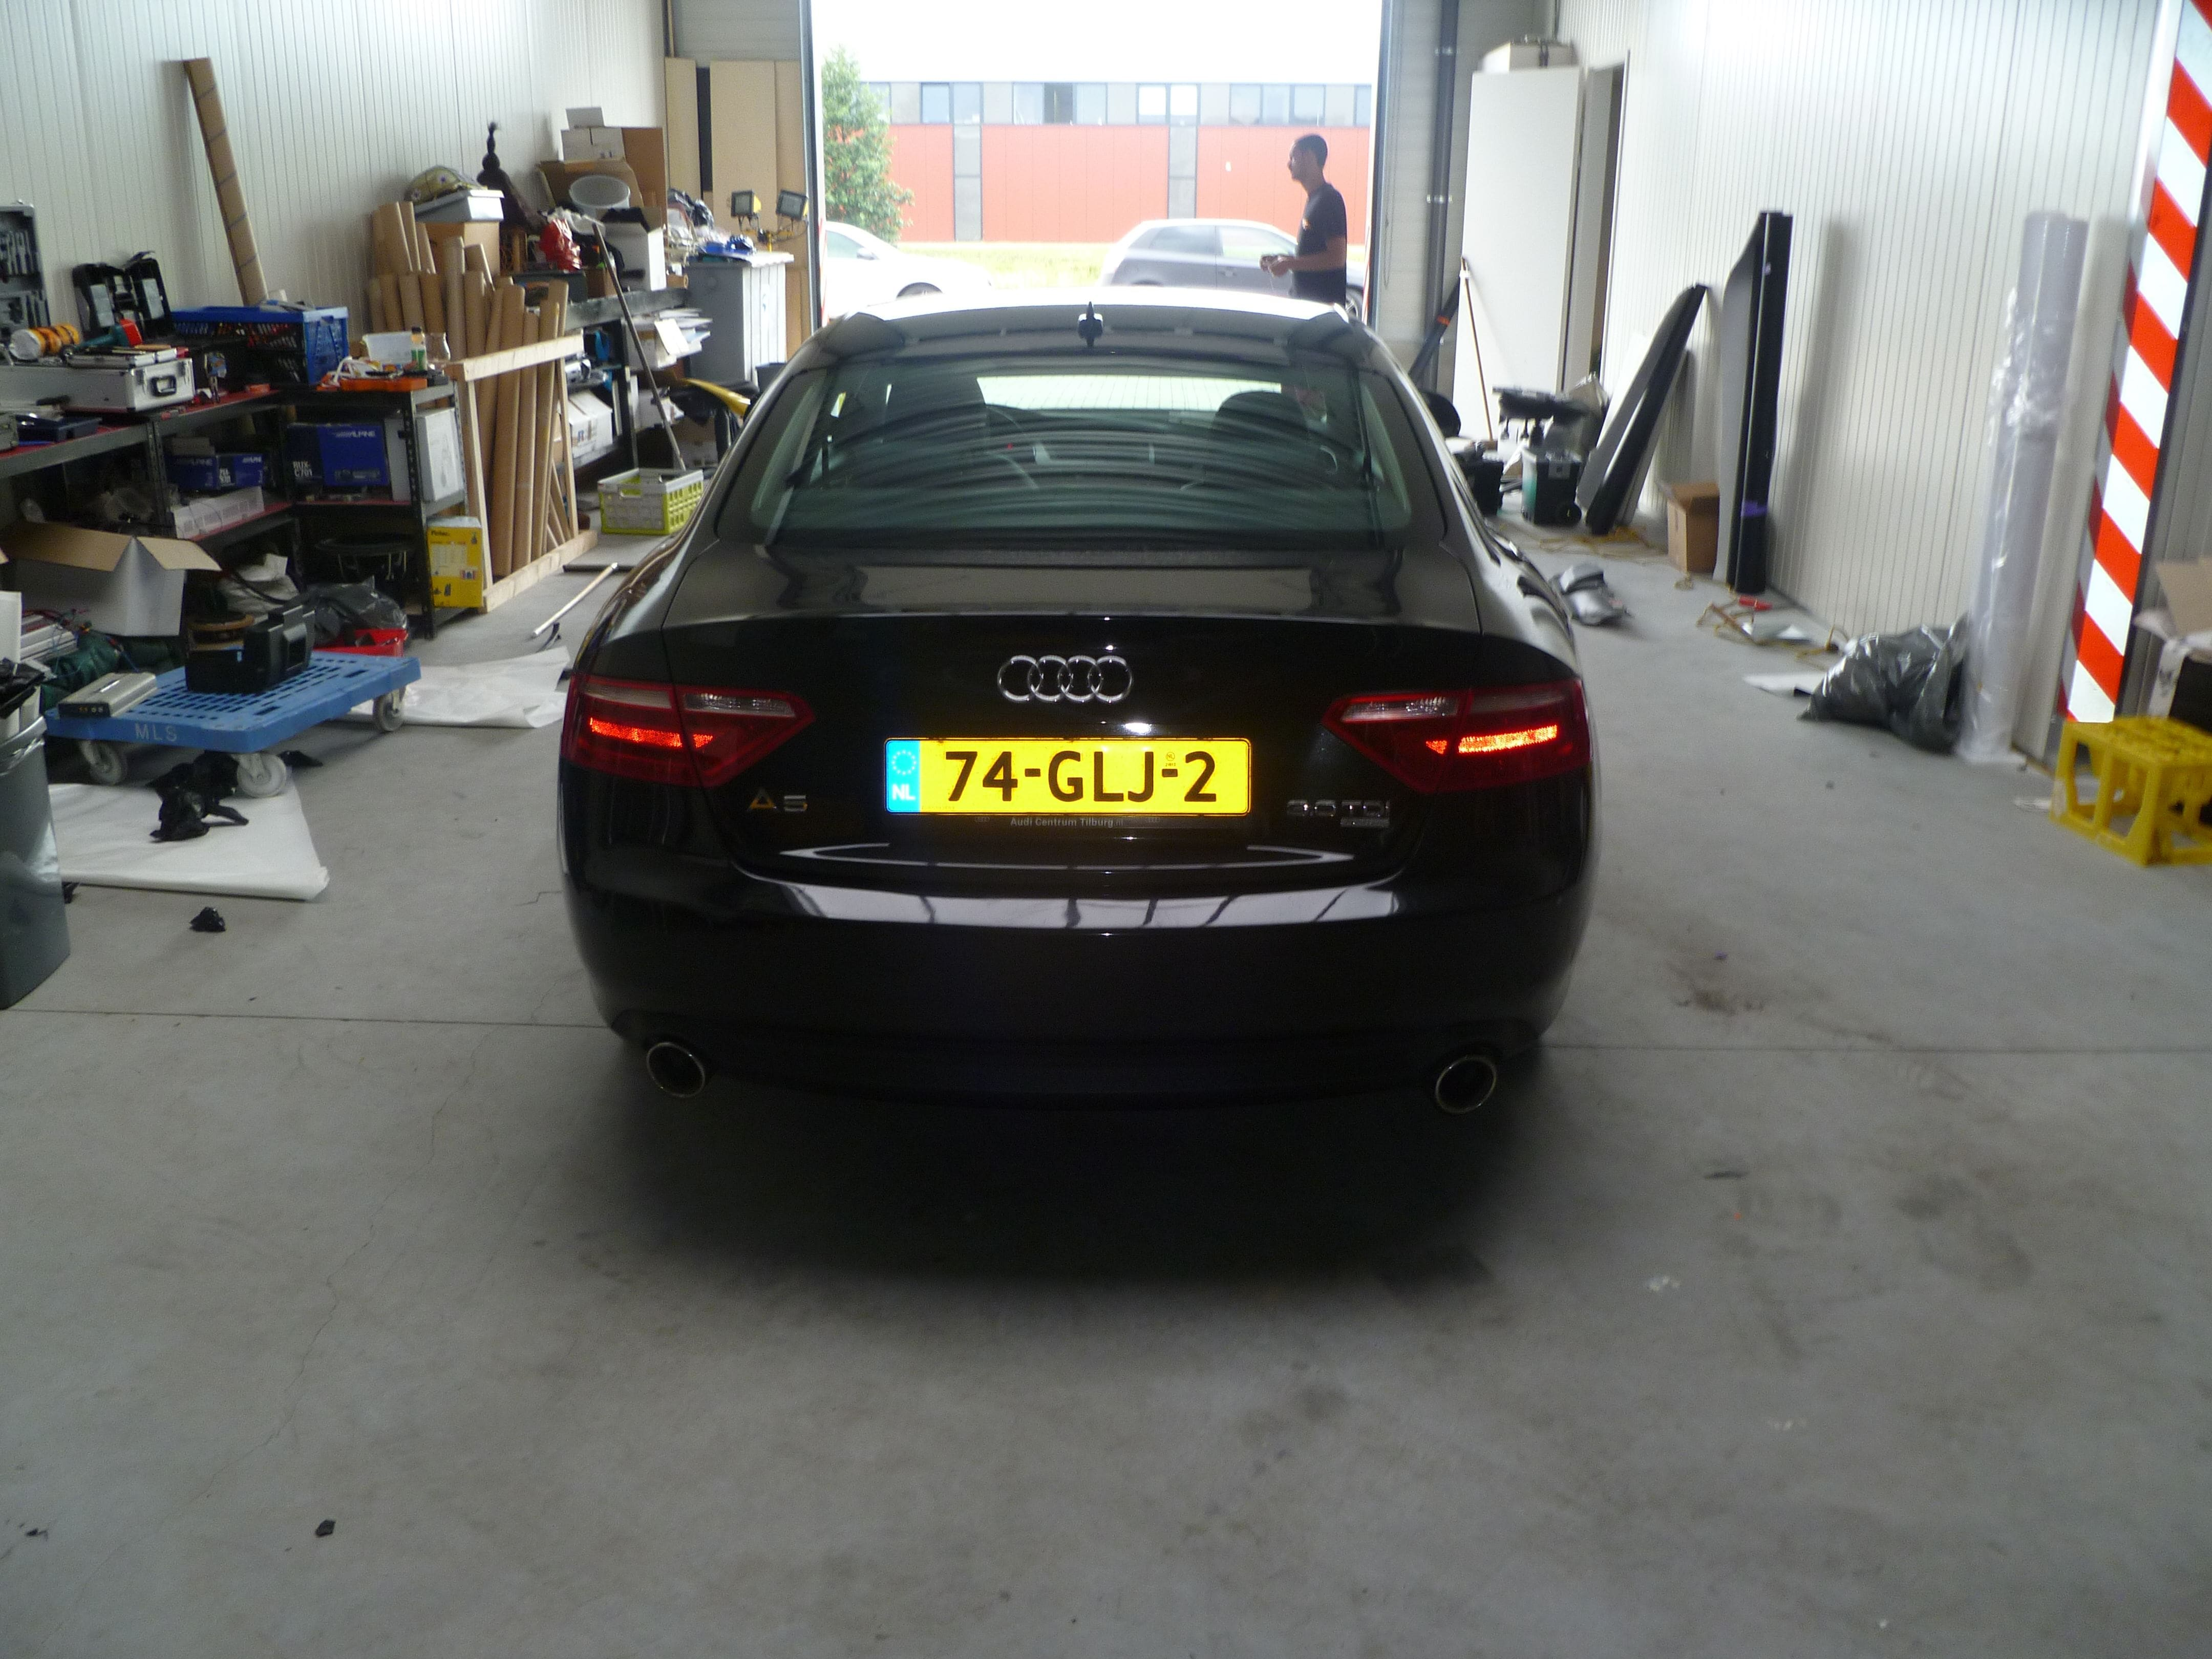 Audi A5 coupe met Metallic Witte Wrap, Carwrapping door Wrapmyride.nu Foto-nr:4673, ©2020